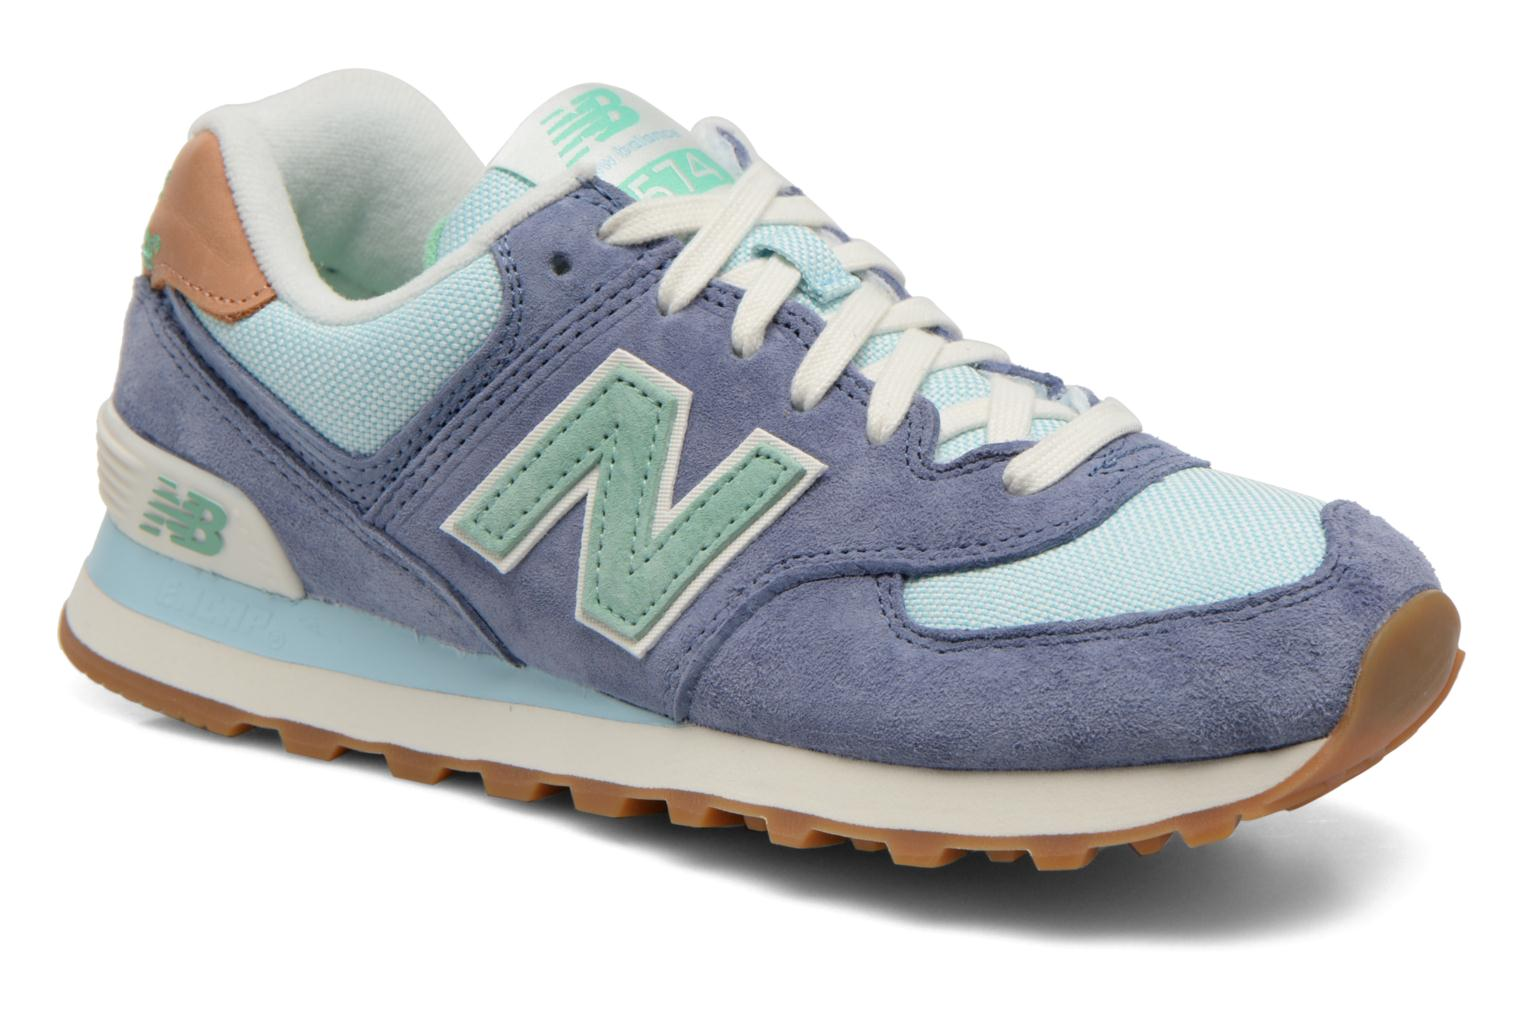 new balance mujer azul y gris